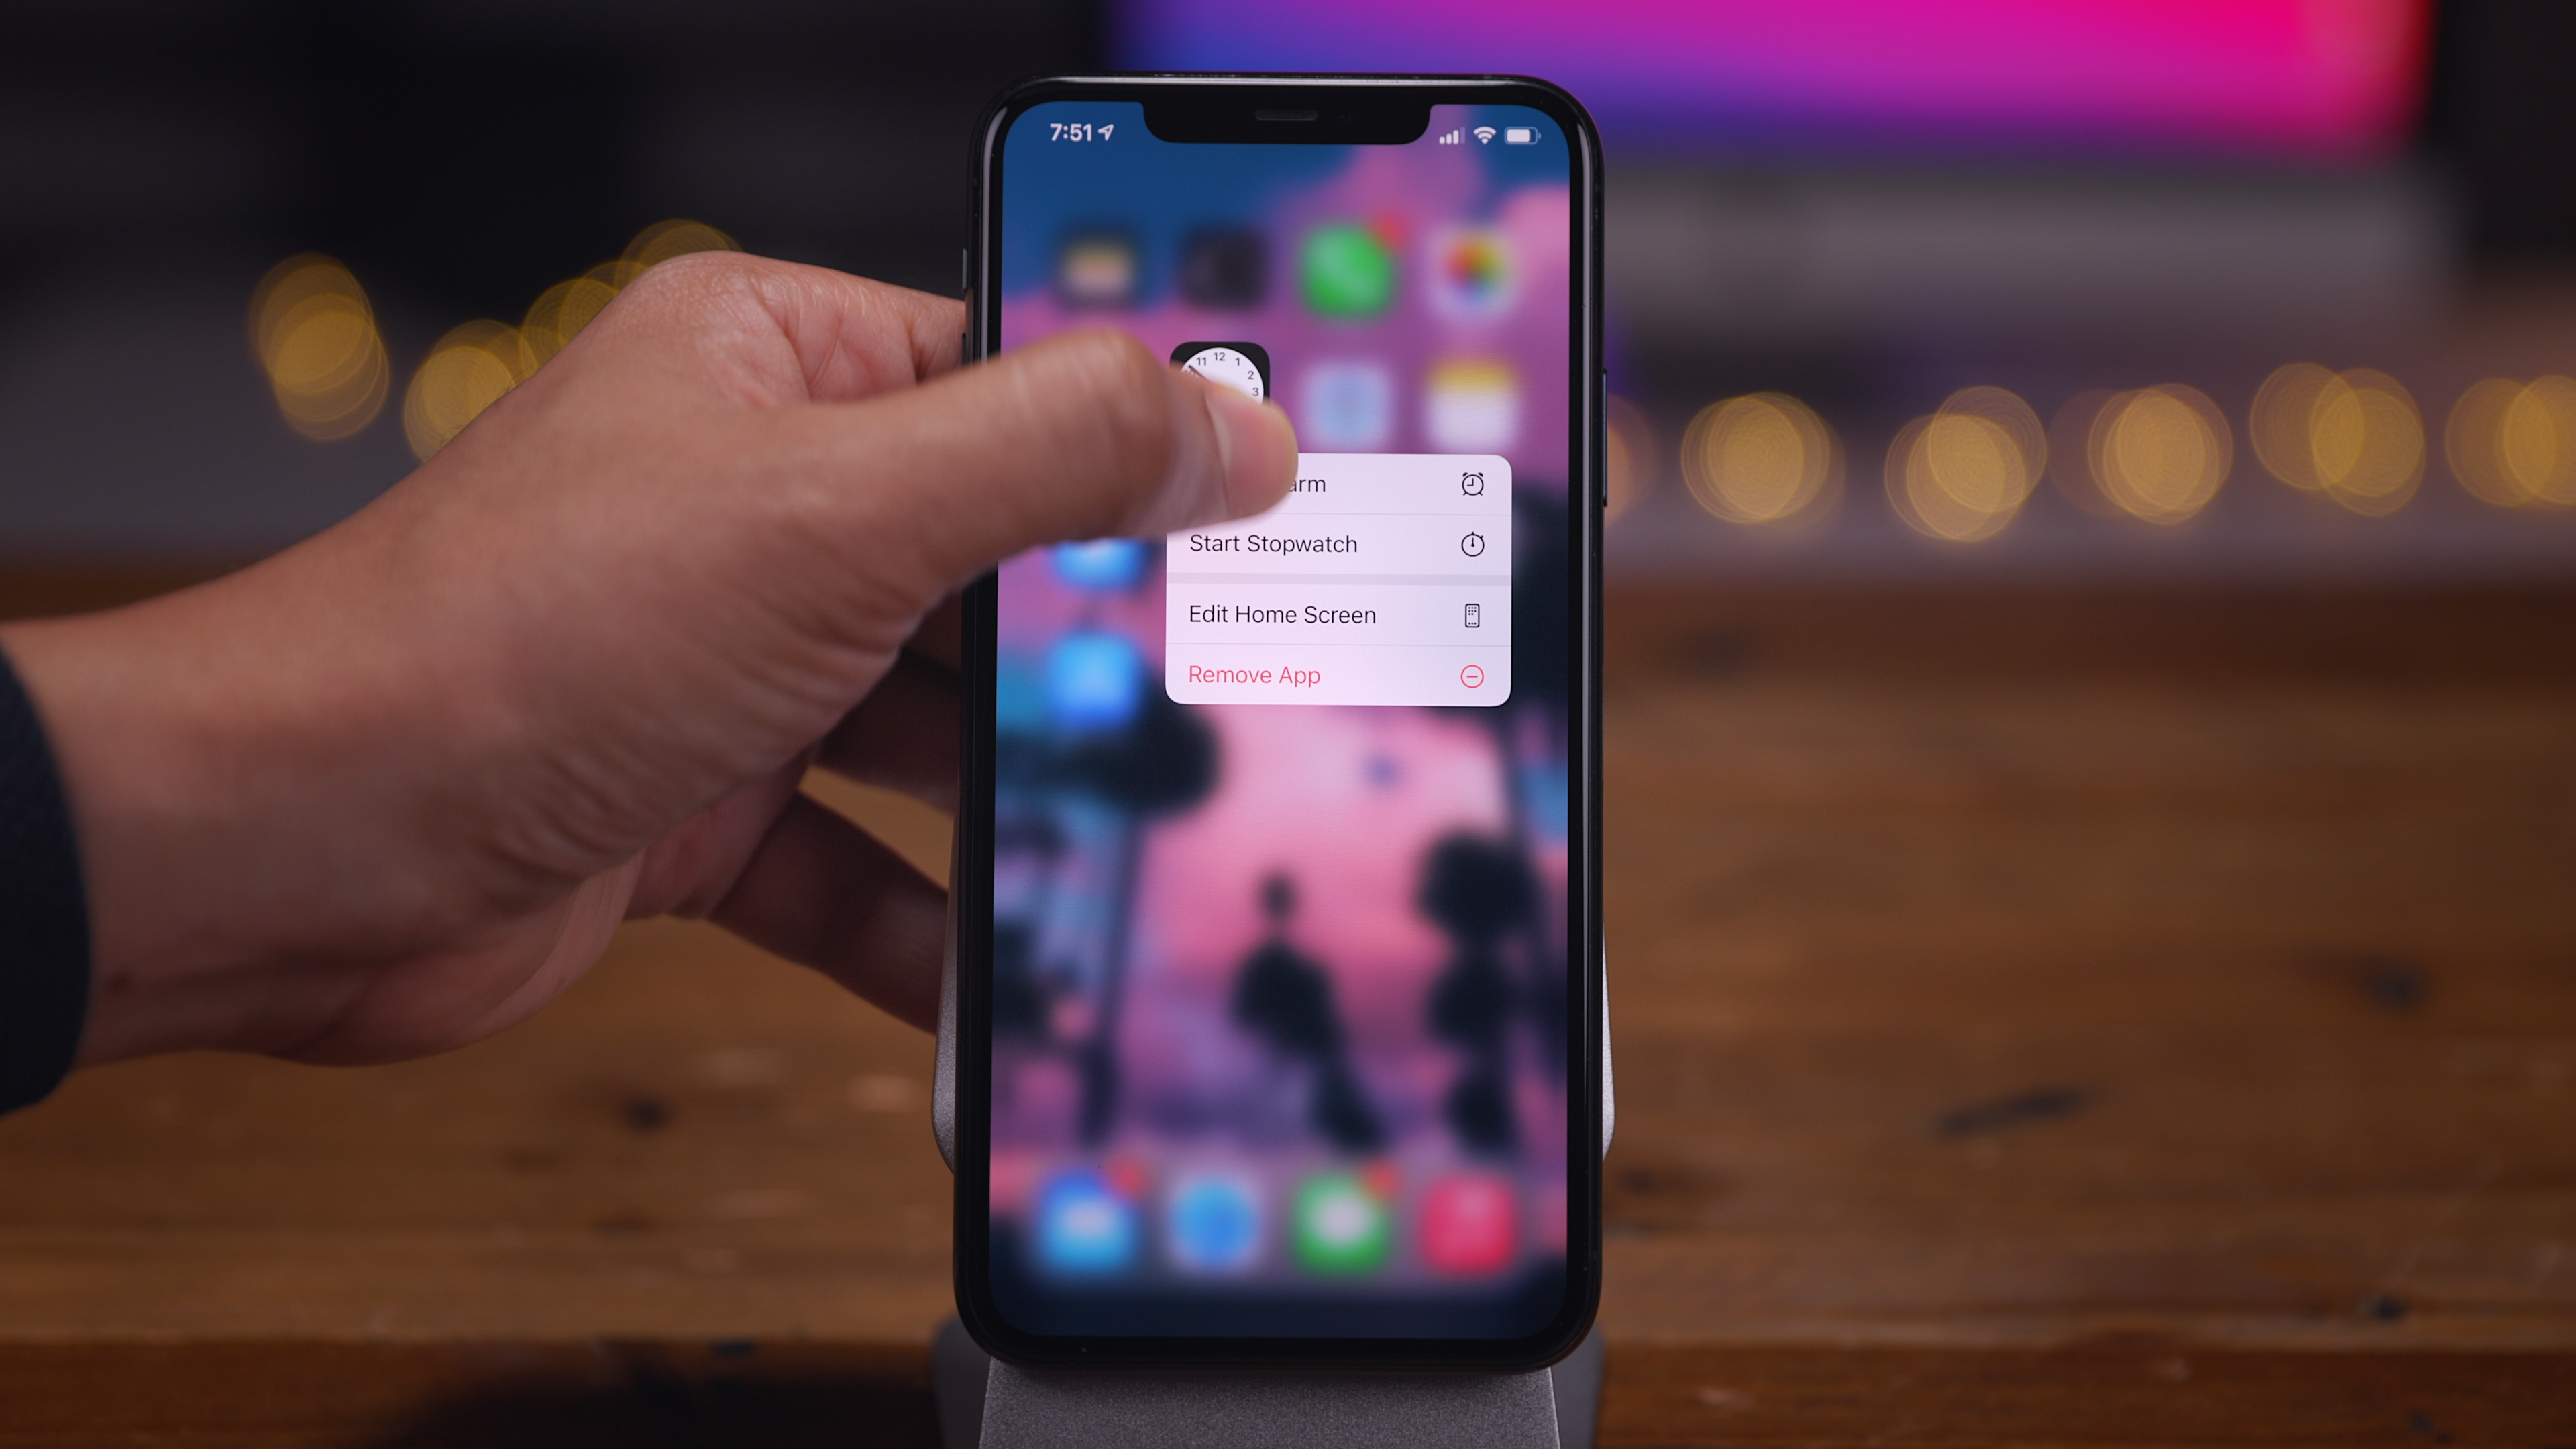 Ios 14 home screen tips and tricks how to perform quick actions on apps